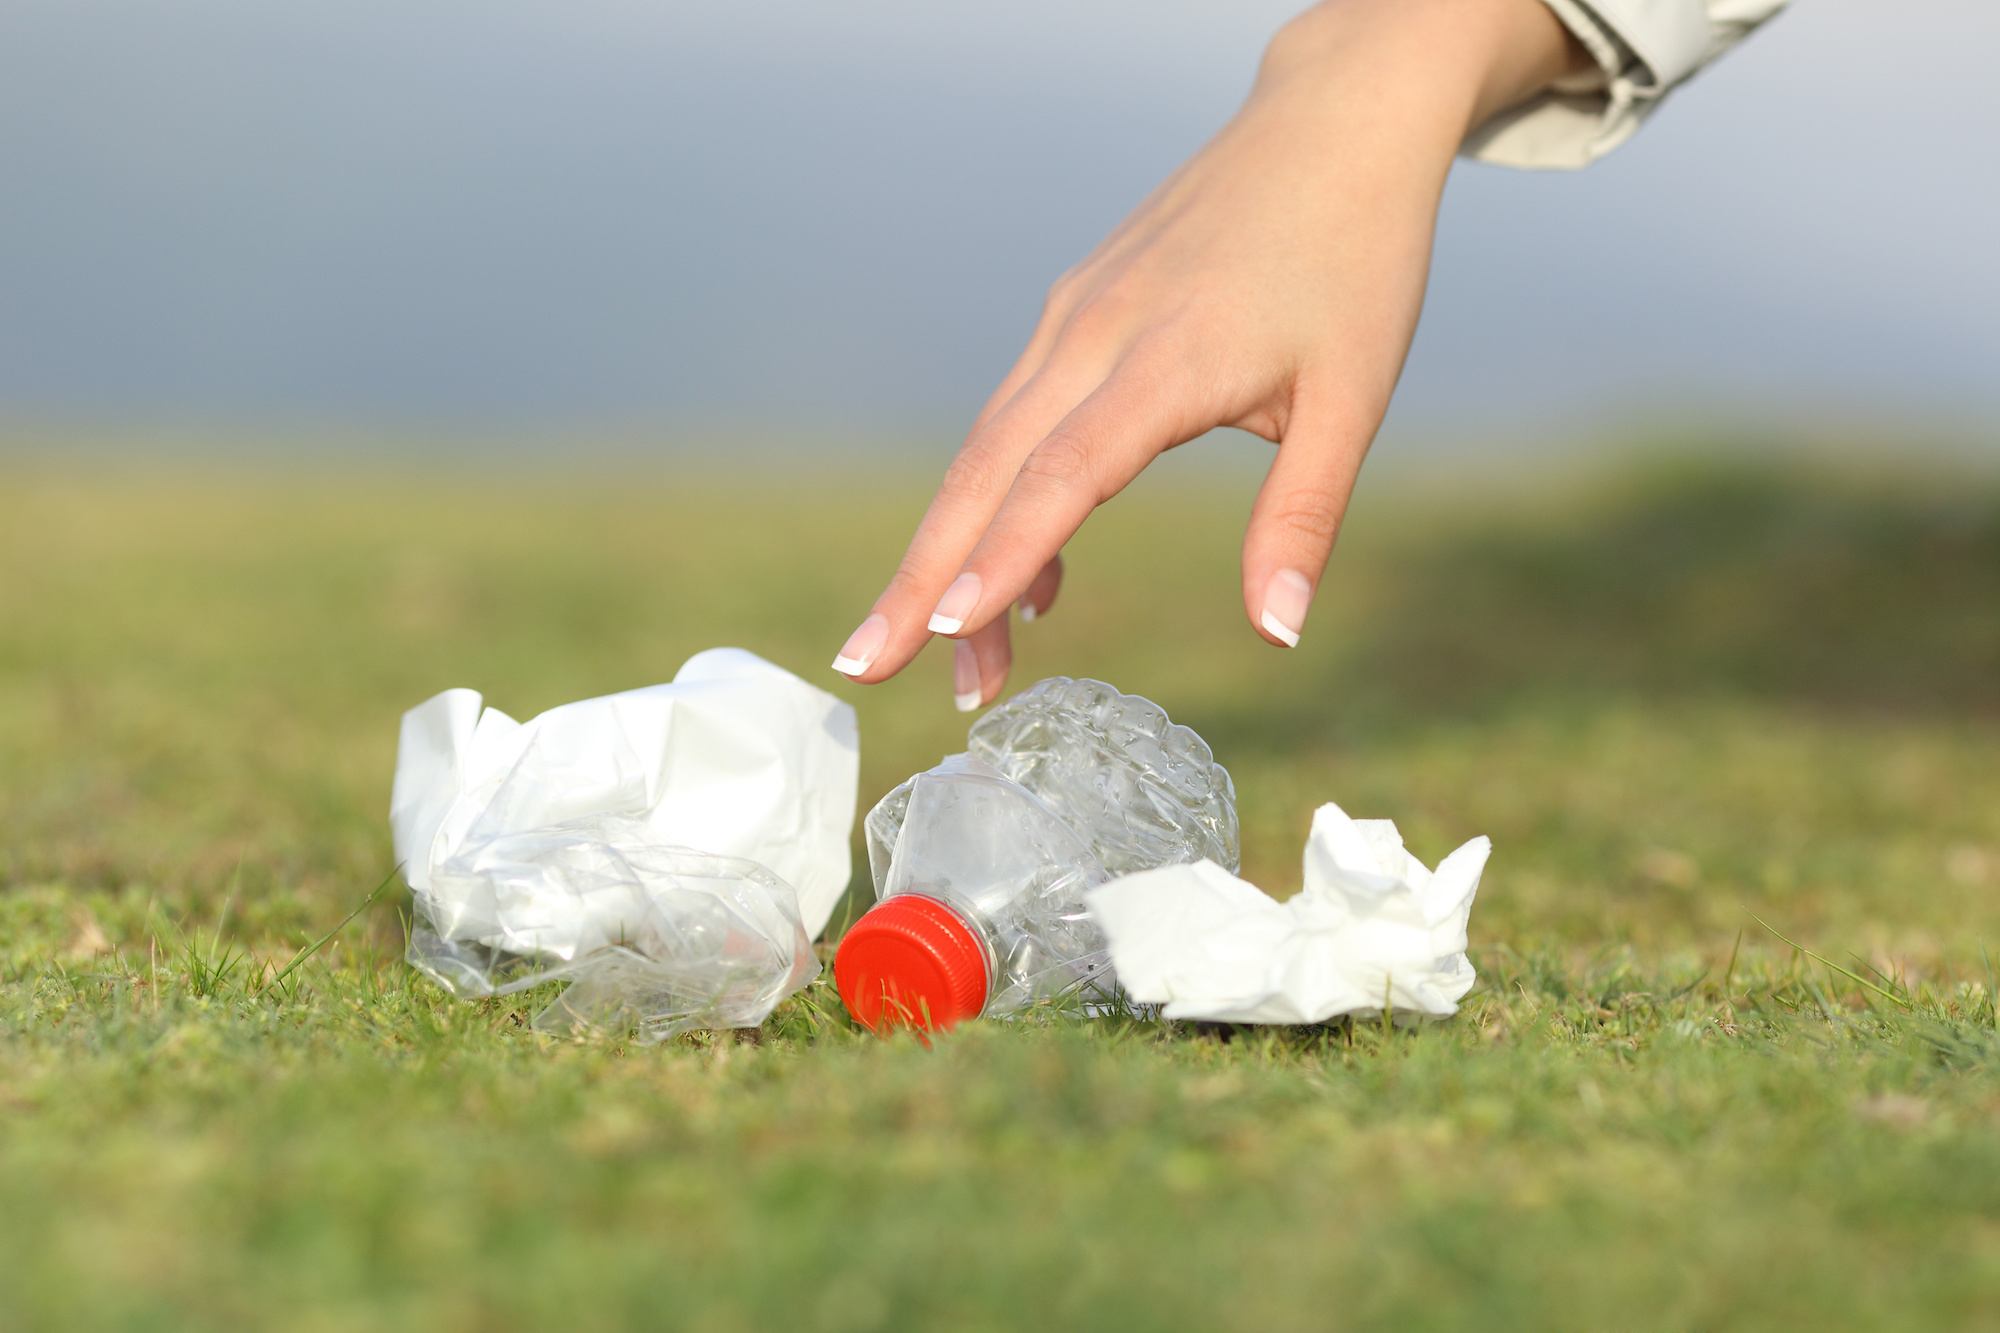 Ontario commits to local MPP's 'Day of Action on Litter' bill - OrilliaMatters